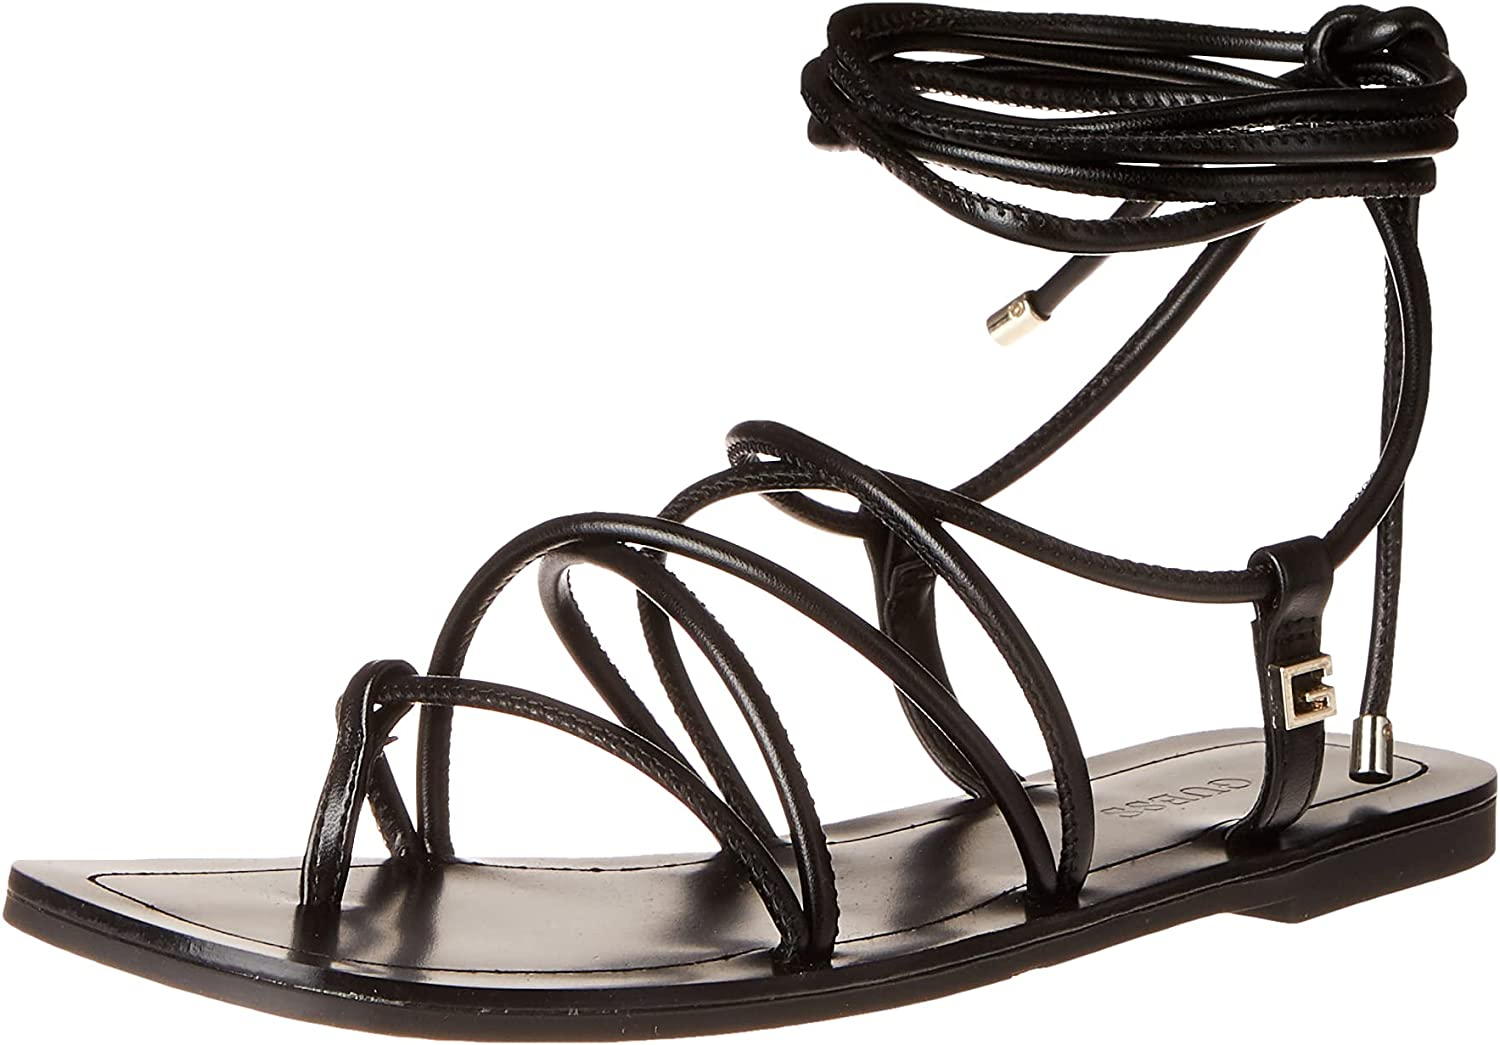 GUESS Special Campaign Women's Cristen 5% OFF Flat Sandal